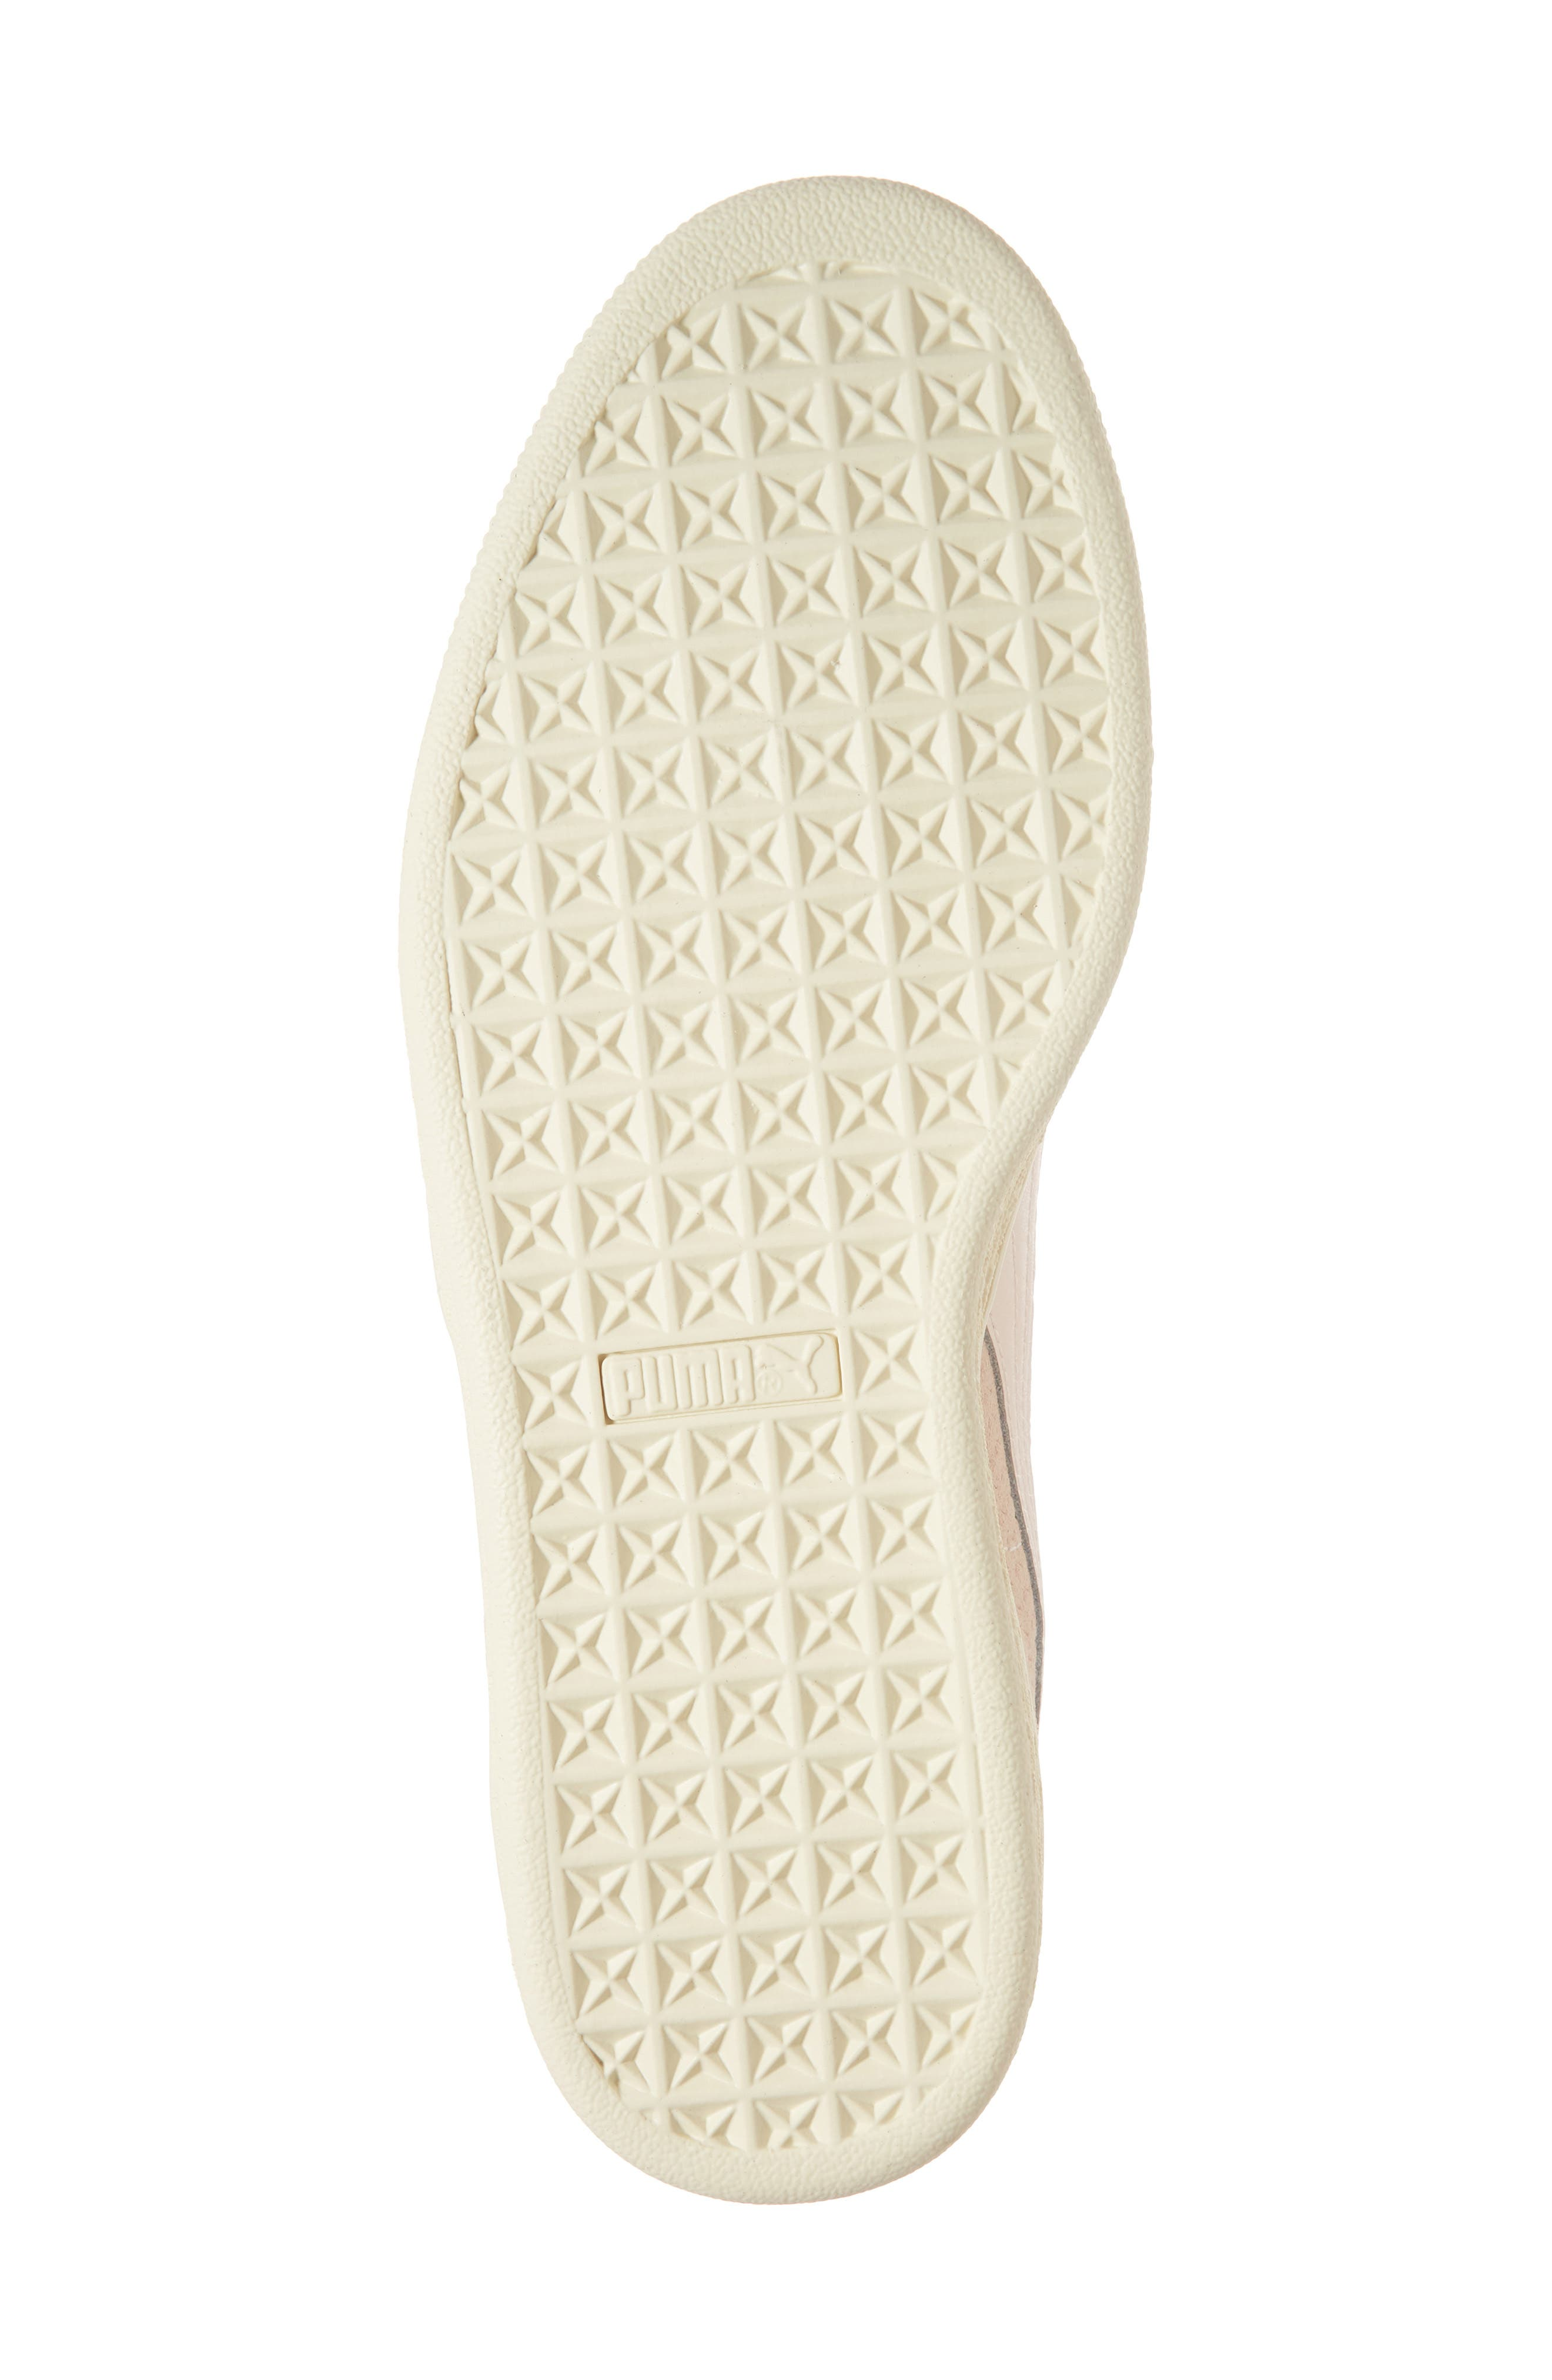 Suede Classic Perforation Sneaker,                             Alternate thumbnail 6, color,                             Pearl/ Whisper White Suede